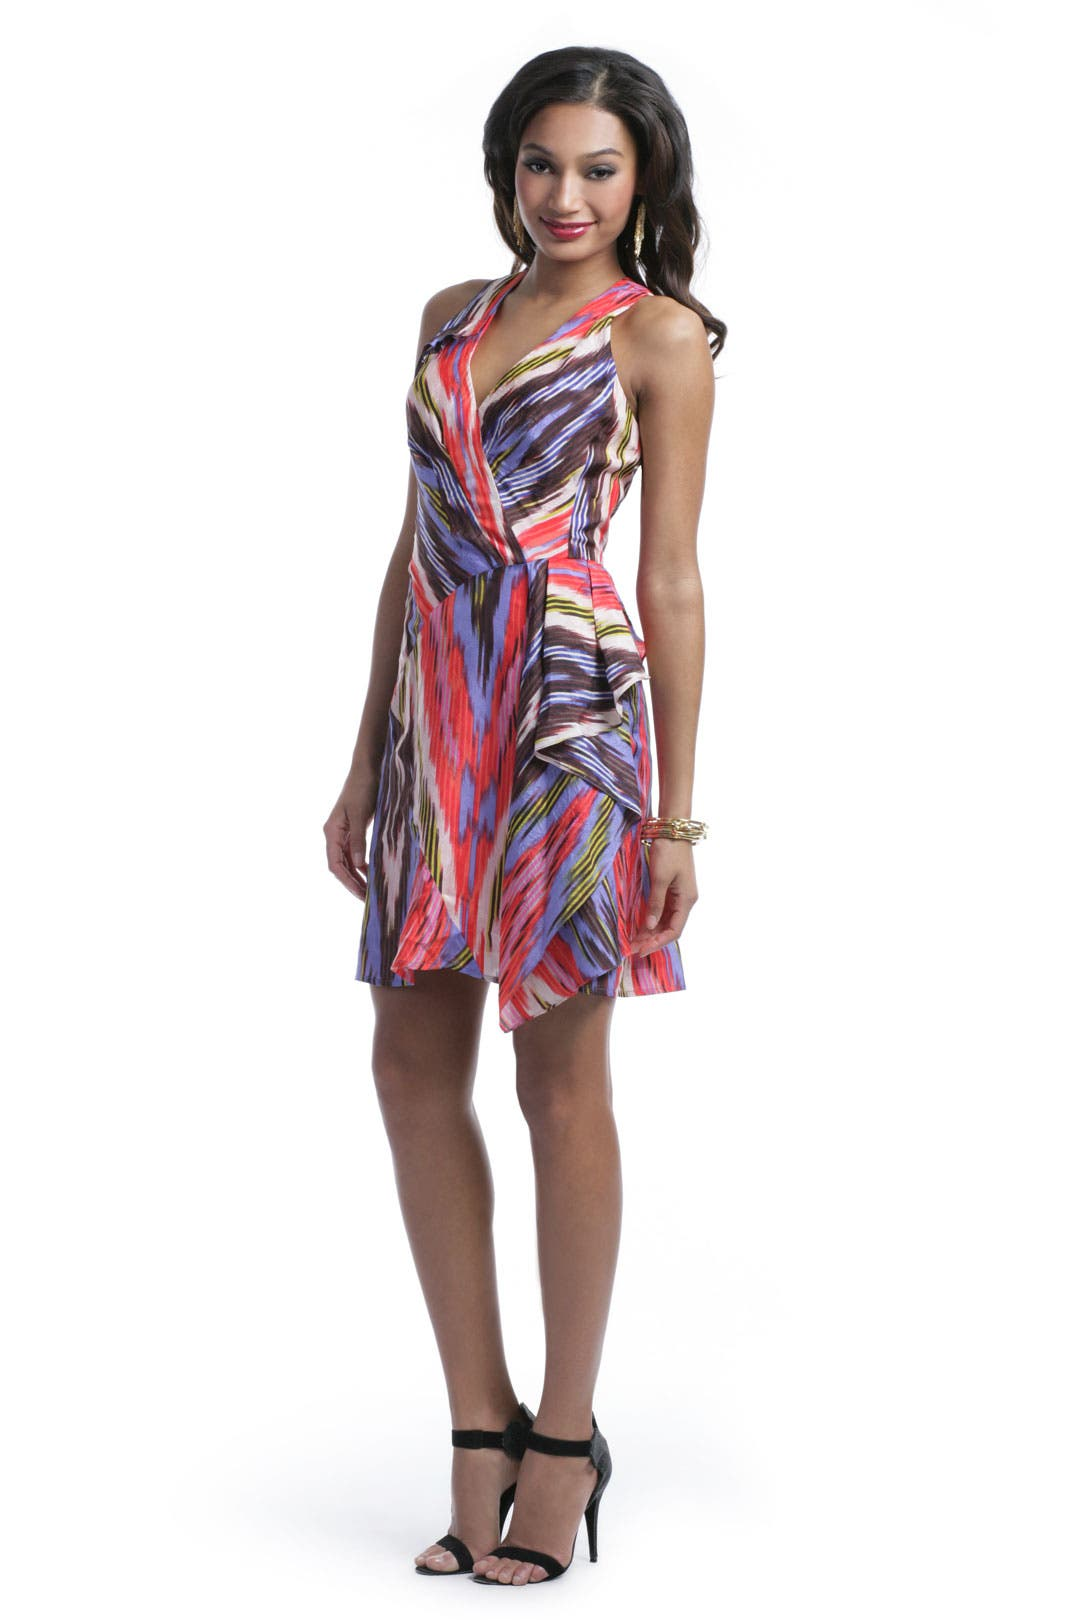 Go Getter Dress by Nanette Lepore